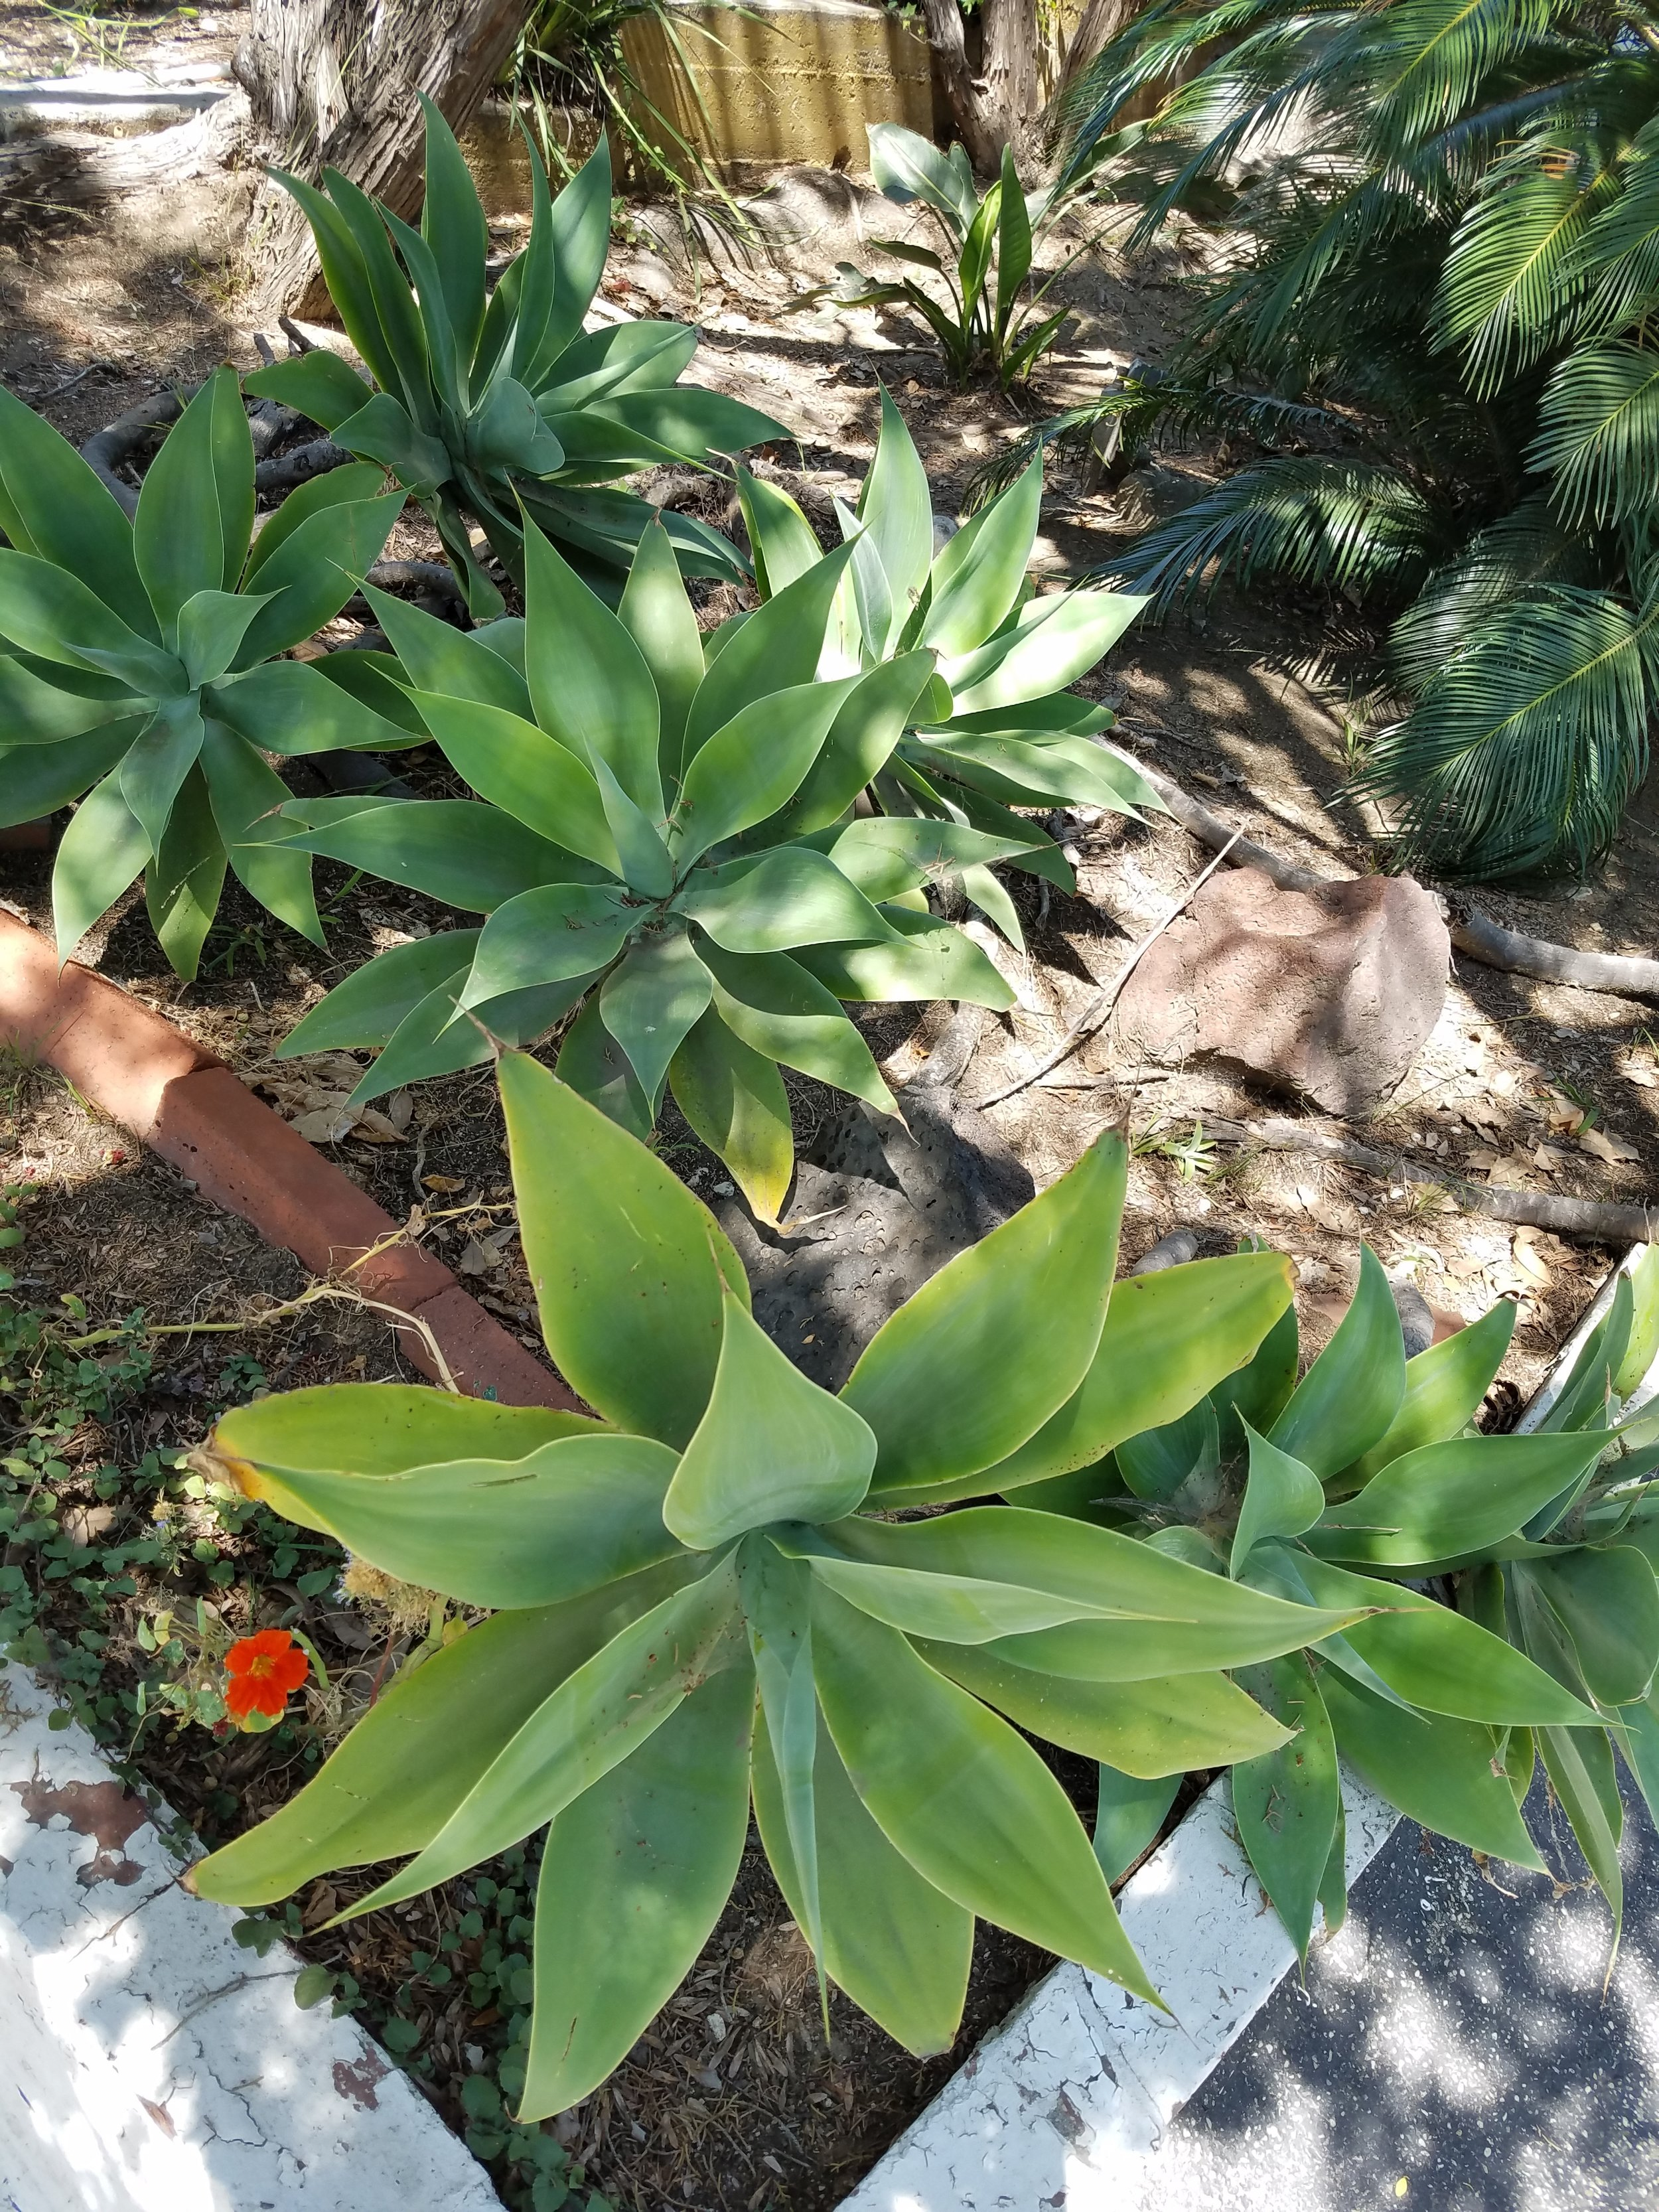 Grow plantsoutside in the ground, a pot,or maybe on a wall or raised bed. -